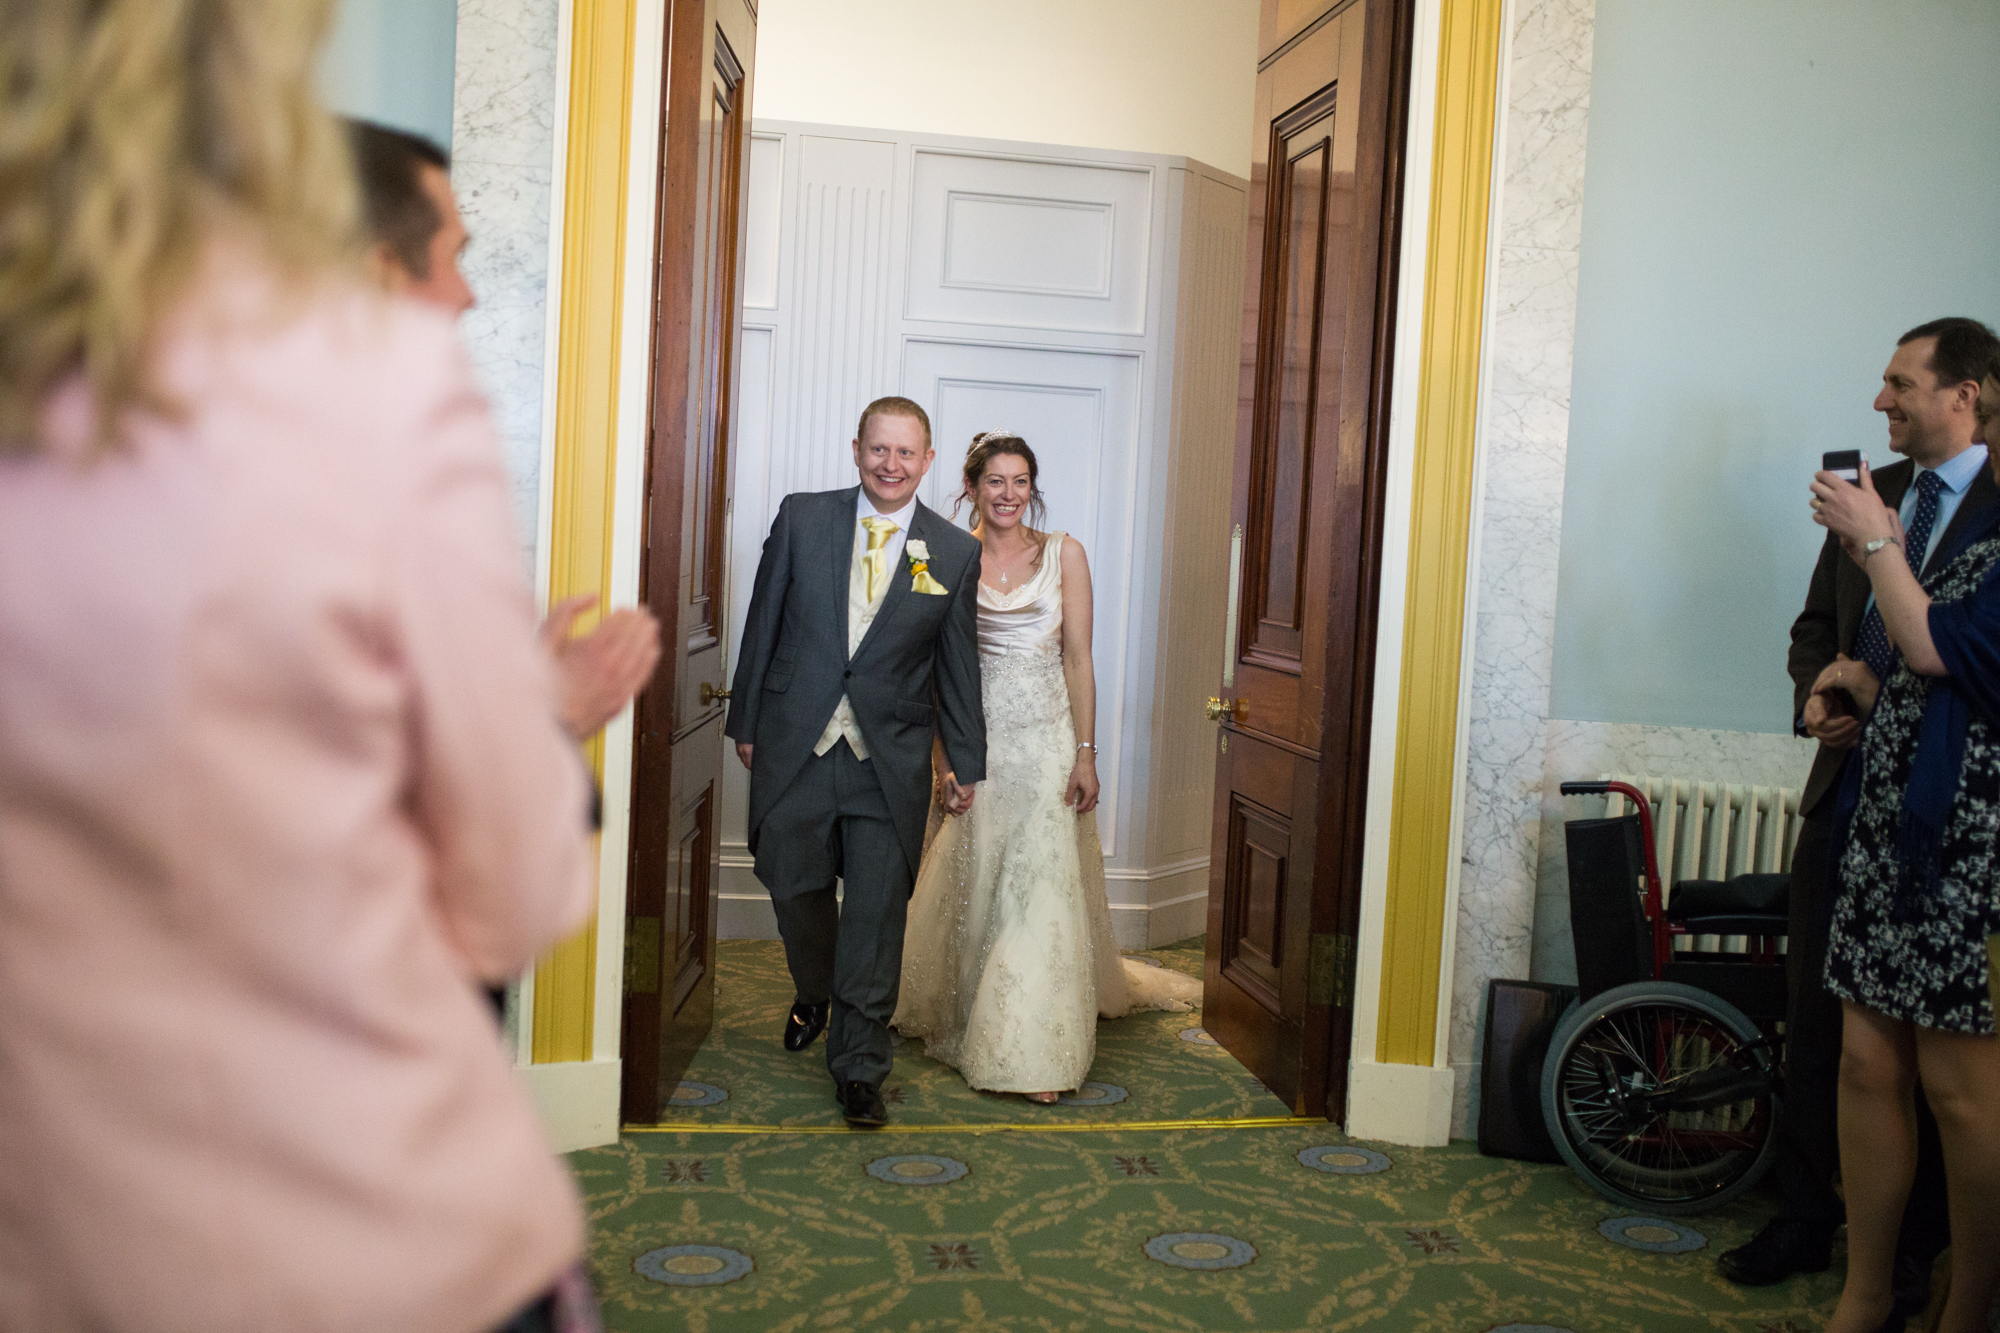 wynyard hall wedding photographer duncan mccall-1035.jpg